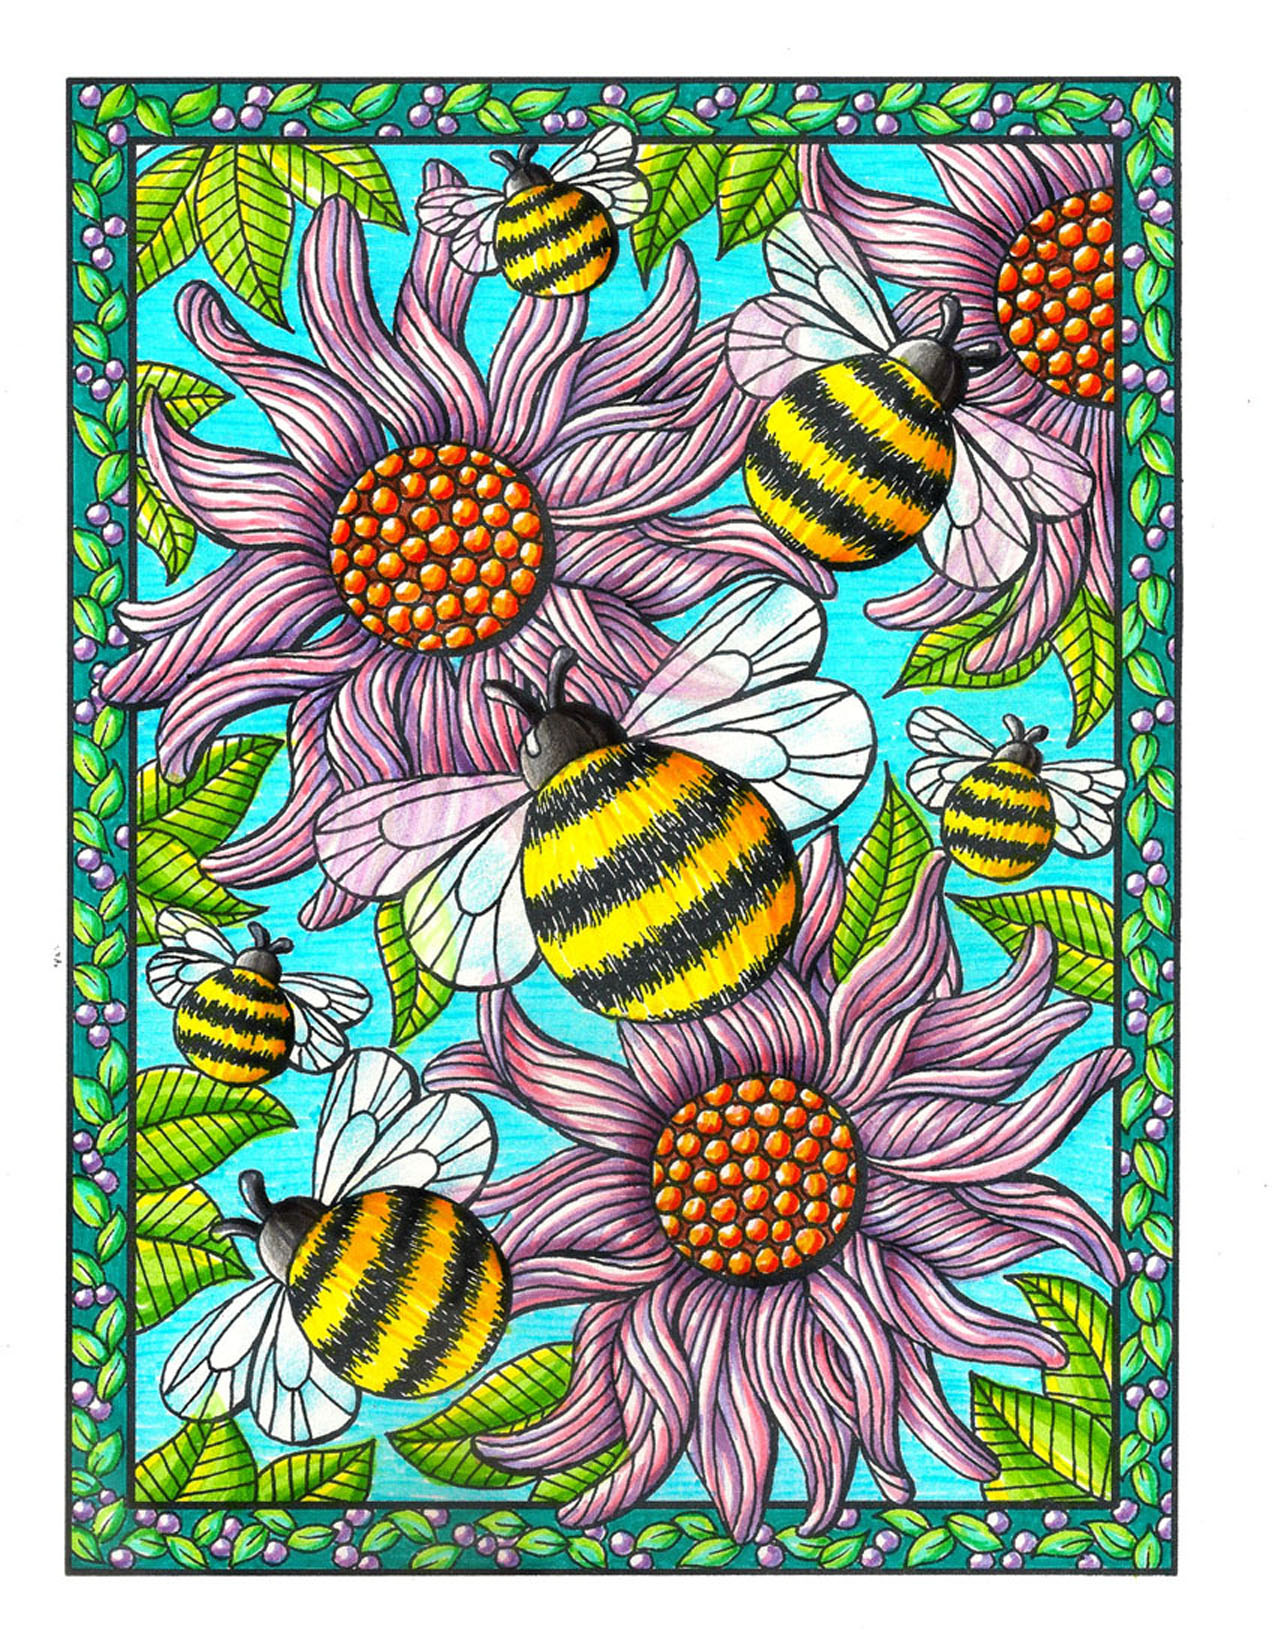 Bees and Flowers Coloring Book Page